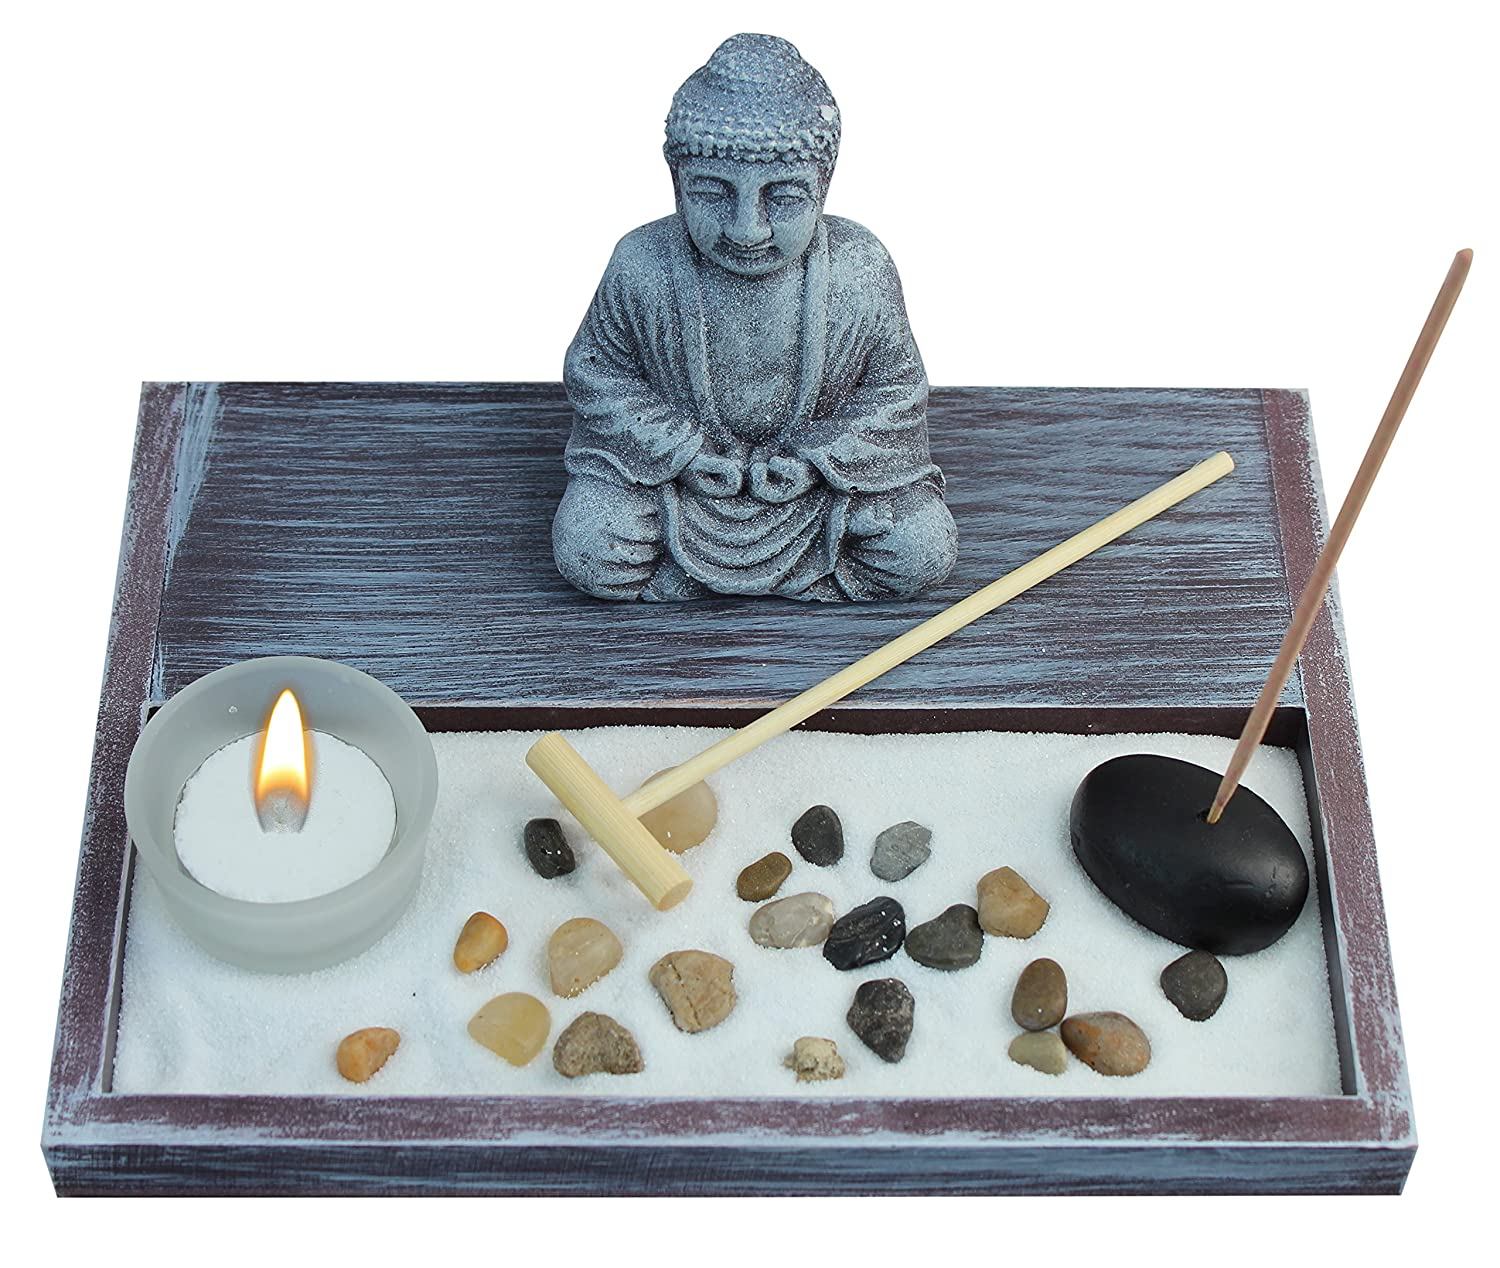 Zen Garden Deluxe Desk Meditation Garden Grey Buddha Statue with Rocks, Tea Light Holder, Rake, Incense and Incense Holder, Sand and Base - Peace & Tranquility (Candle Not Included)